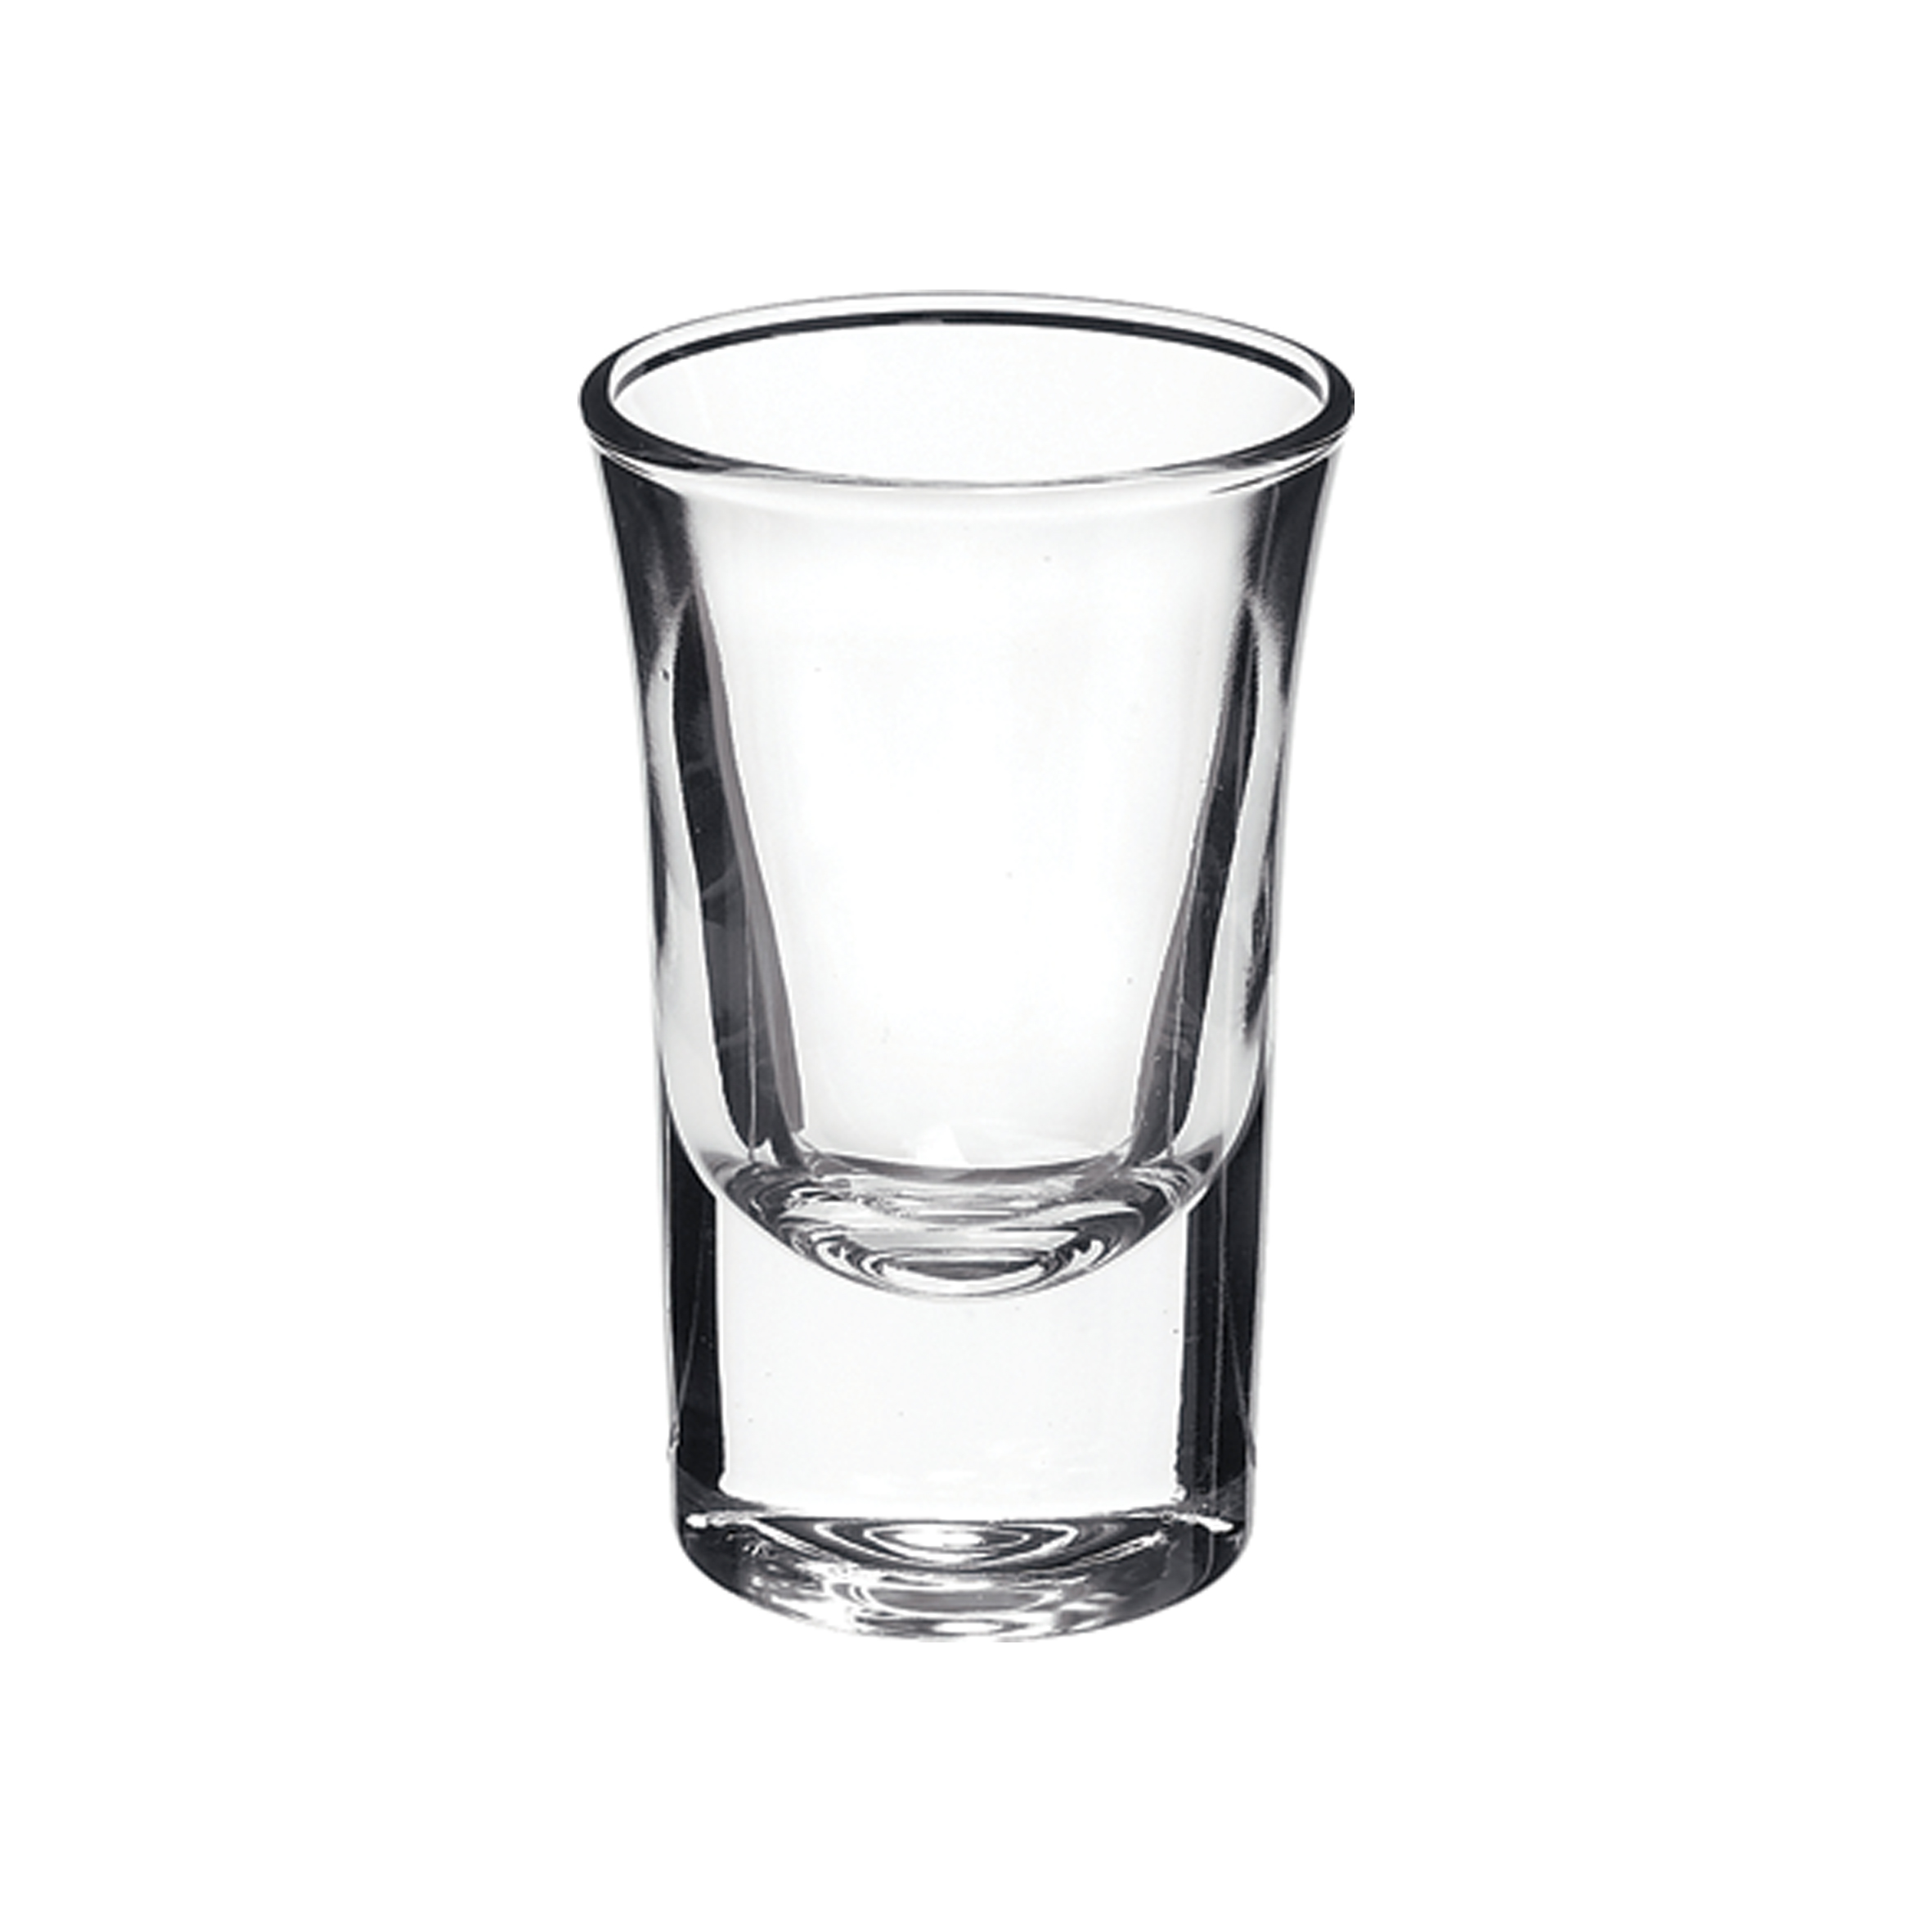 34ml Bormioli Dublino Shot Glass